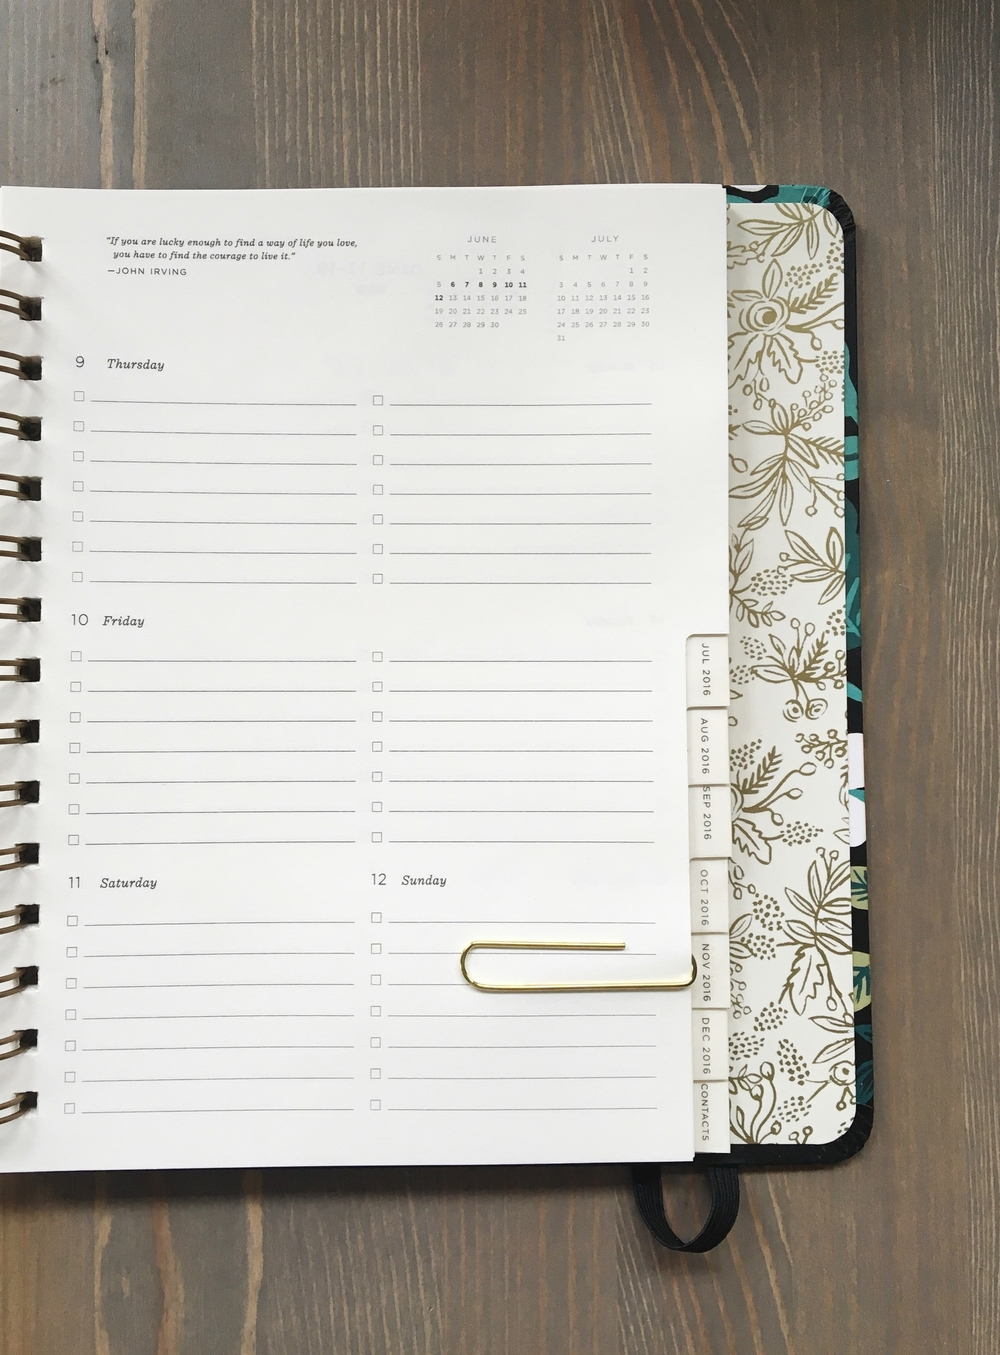 "Planner by Rifle Paper Co.  Page Quote: ""If you are lucky enough to find a way of life you love, you have to find the courage to live it."" -JOHN IRVING"